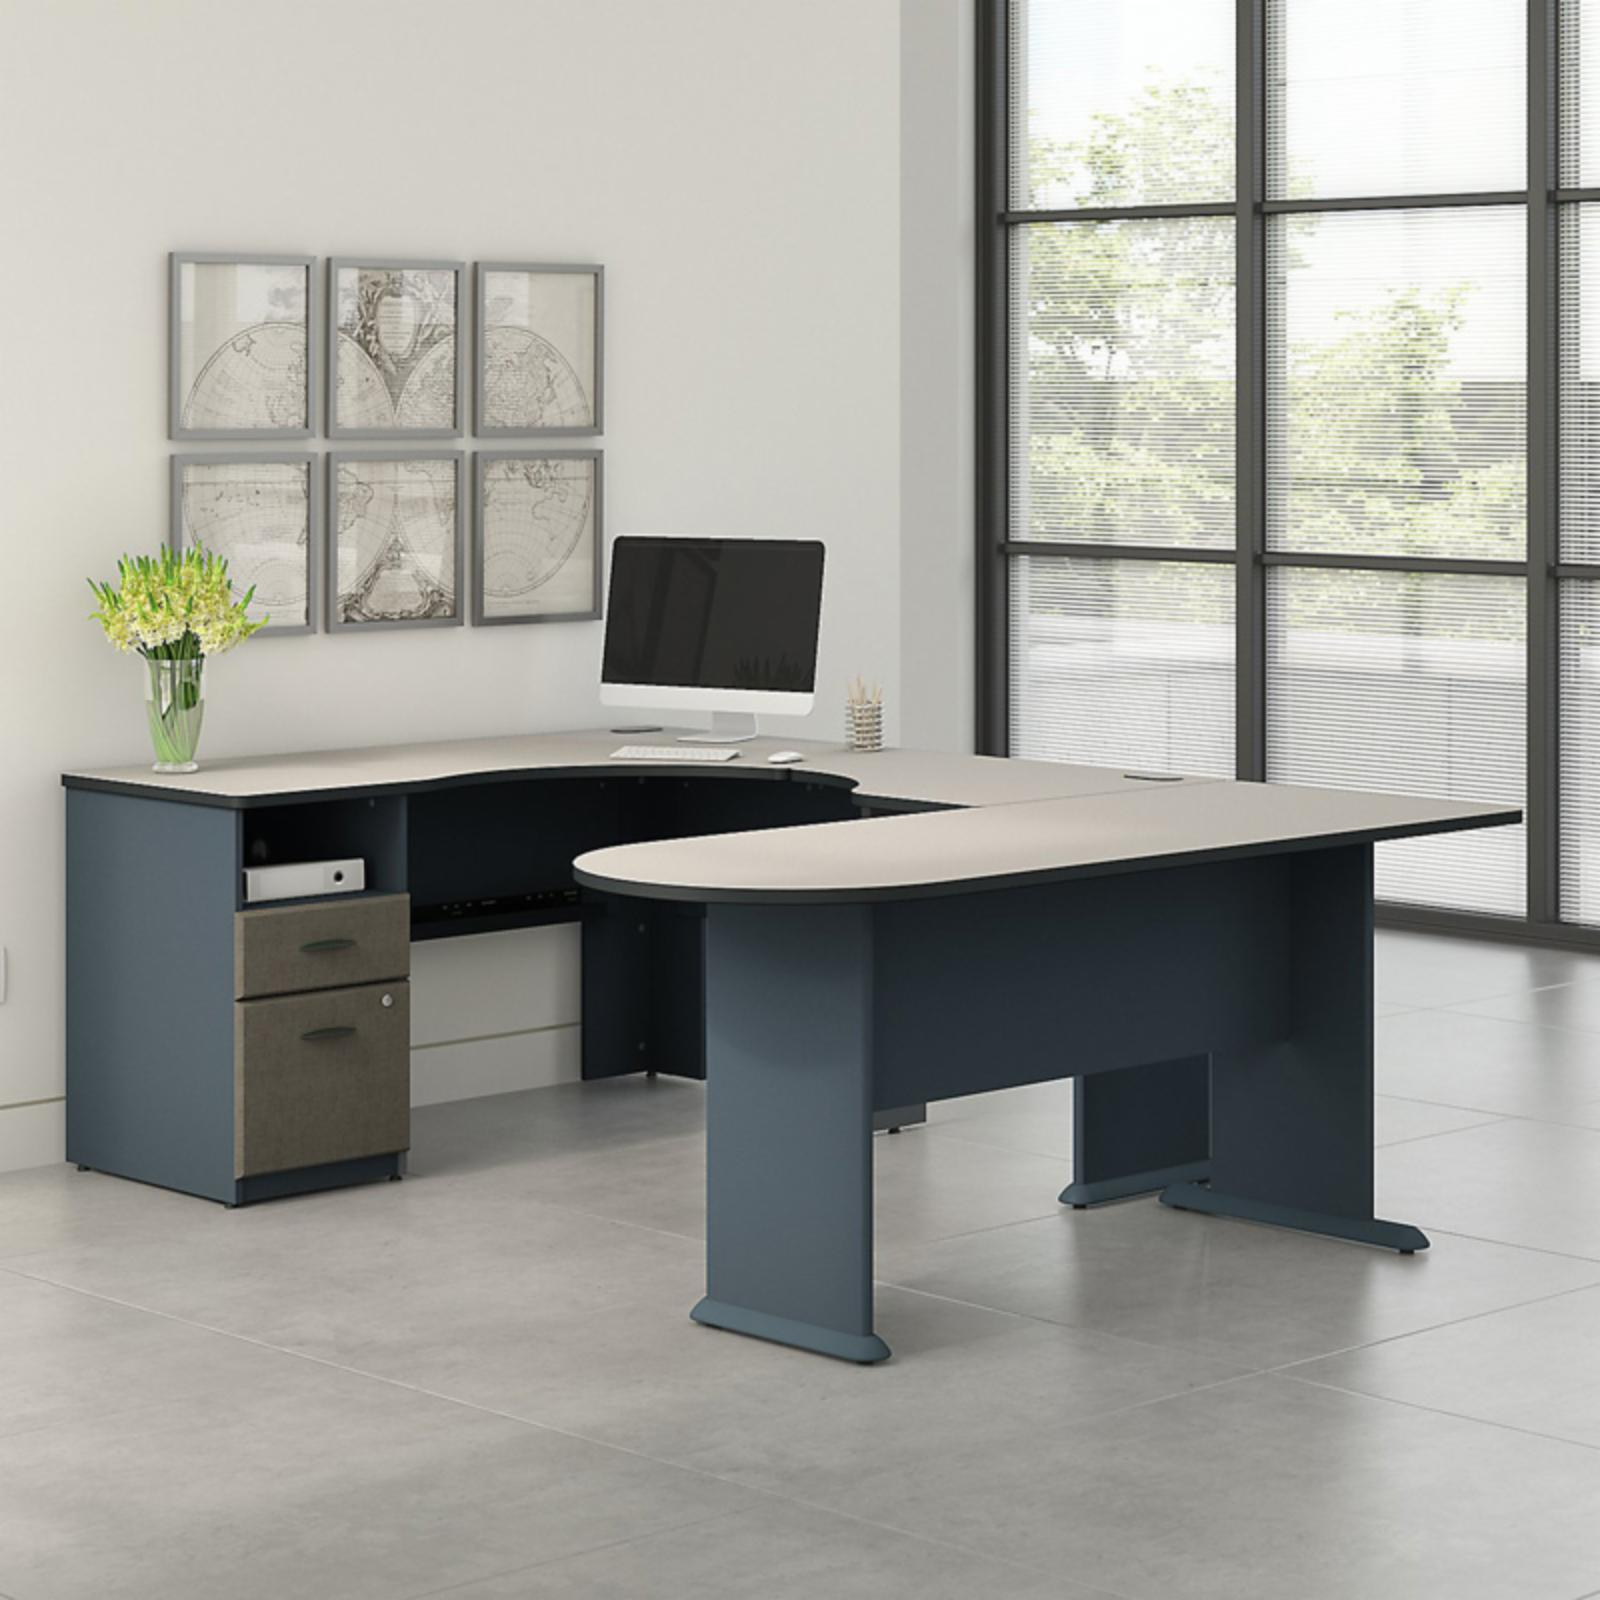 Office Connect Access U Shaped Corner Desk with Pedestal - ACS003SL